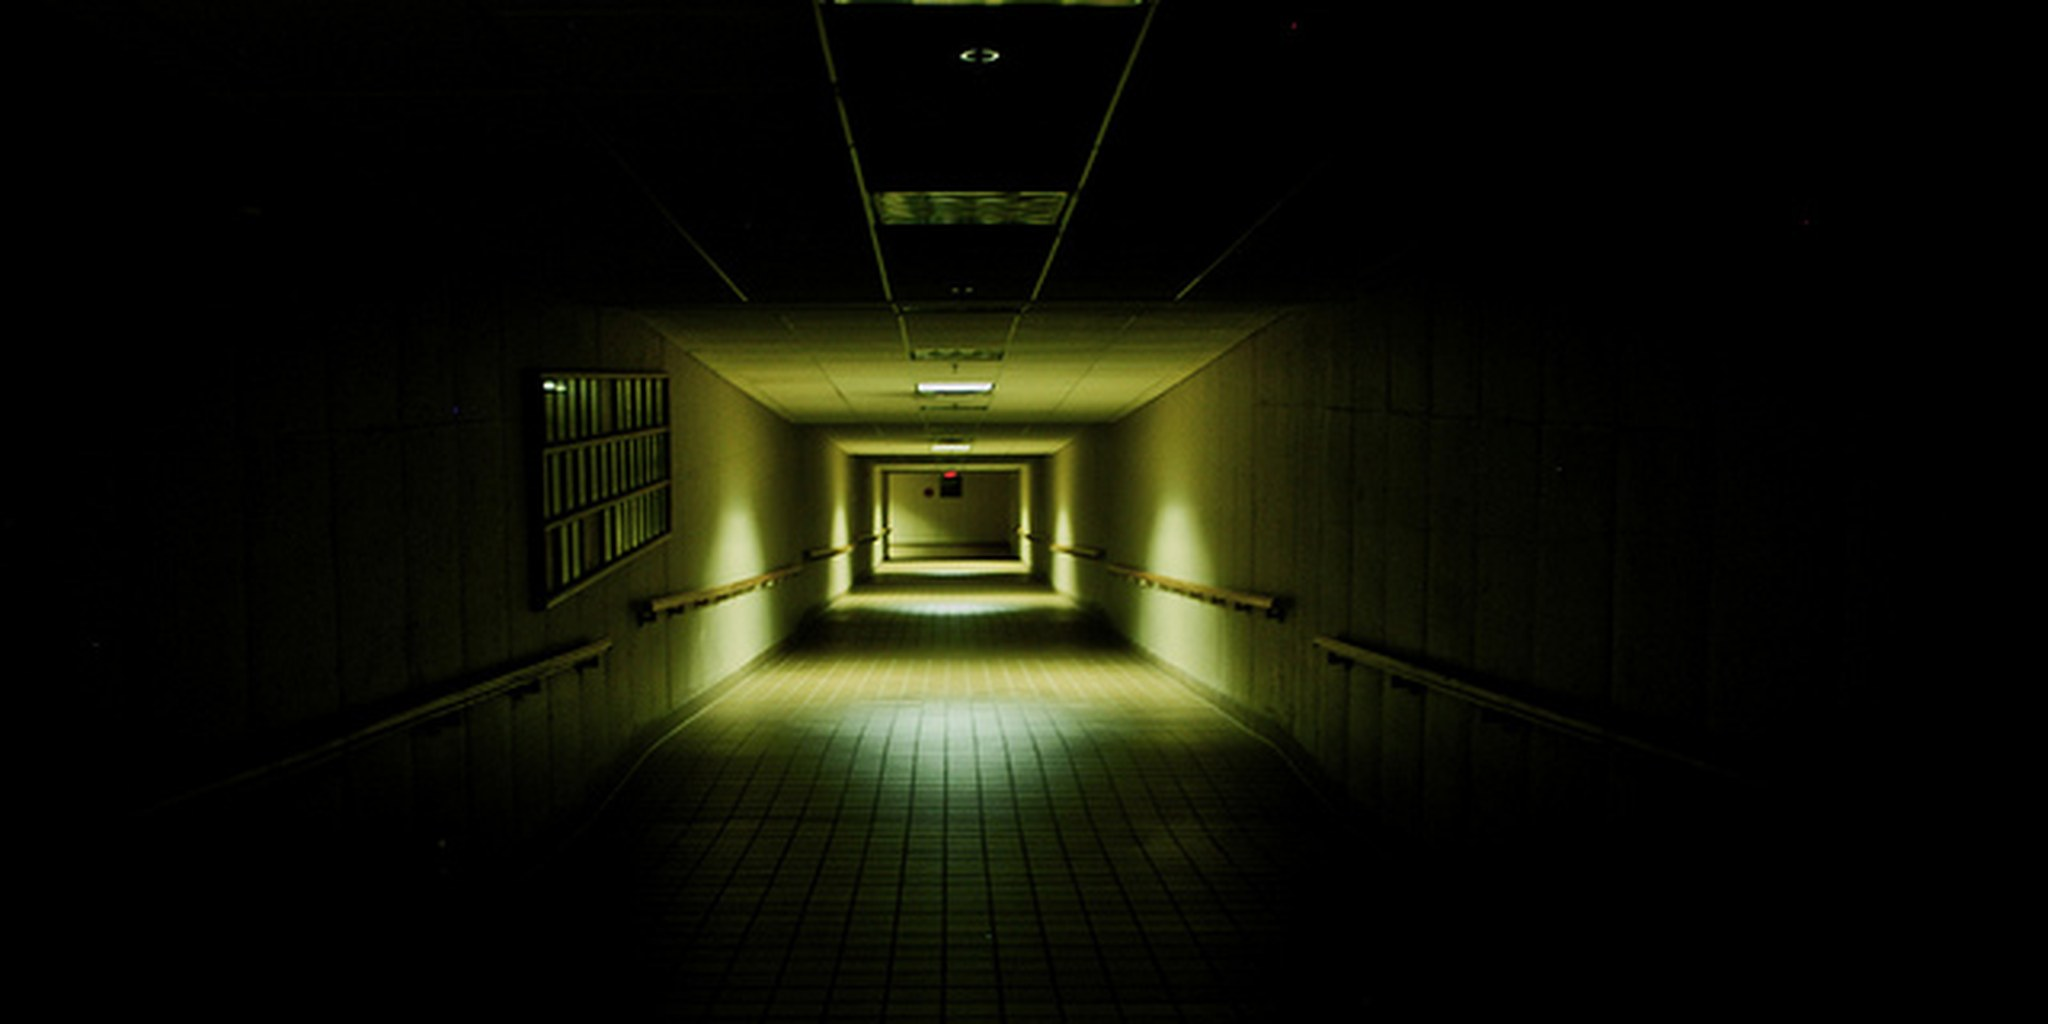 All sizes | Creepy Hallway | Flickr - Photo Sharing!